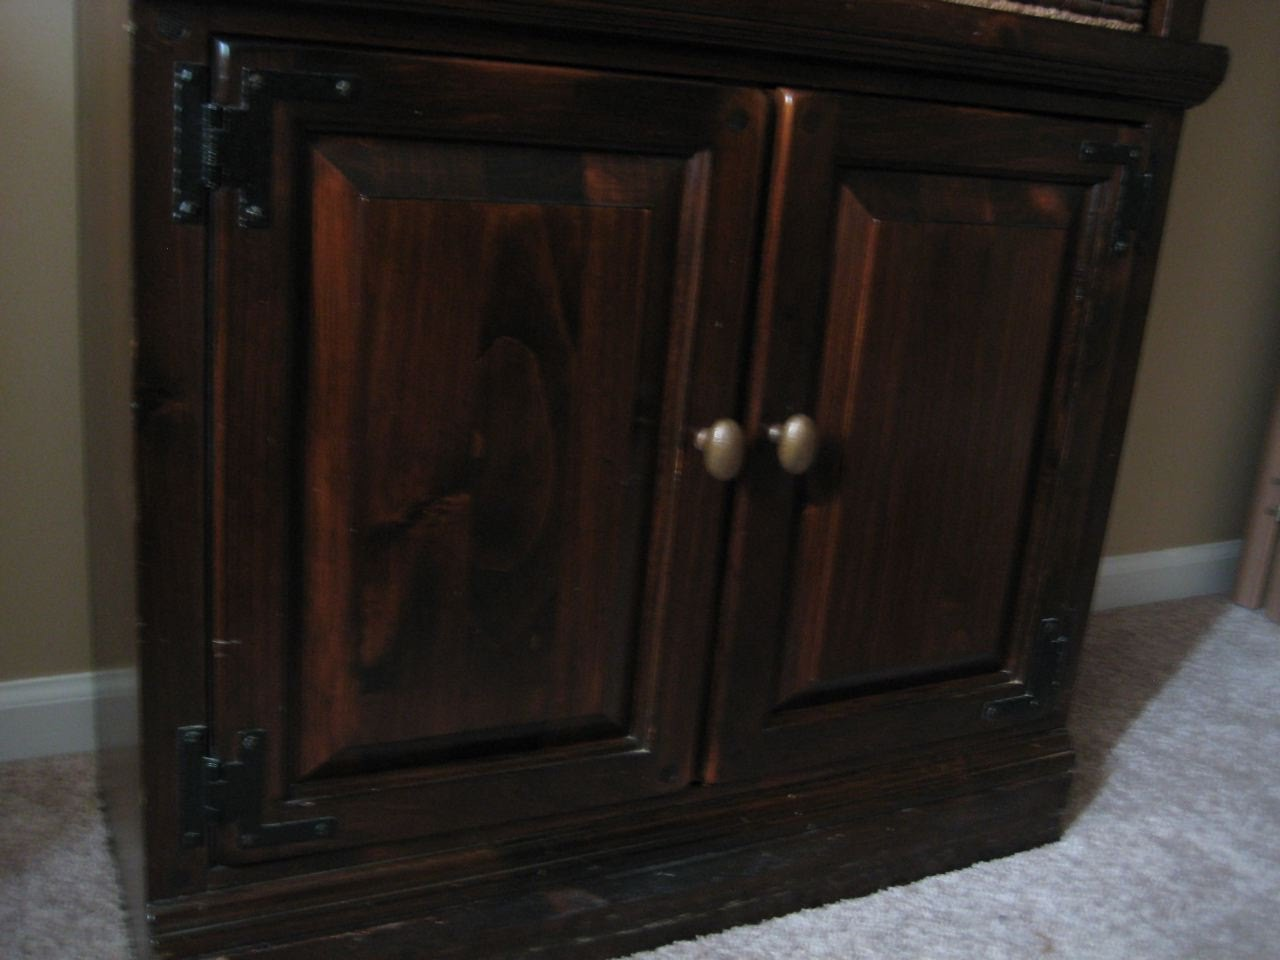 Jubilee Furniture: Tuesday's customer inspiration - Joy ... on Hobby Lobby Furniture Clearance id=95757